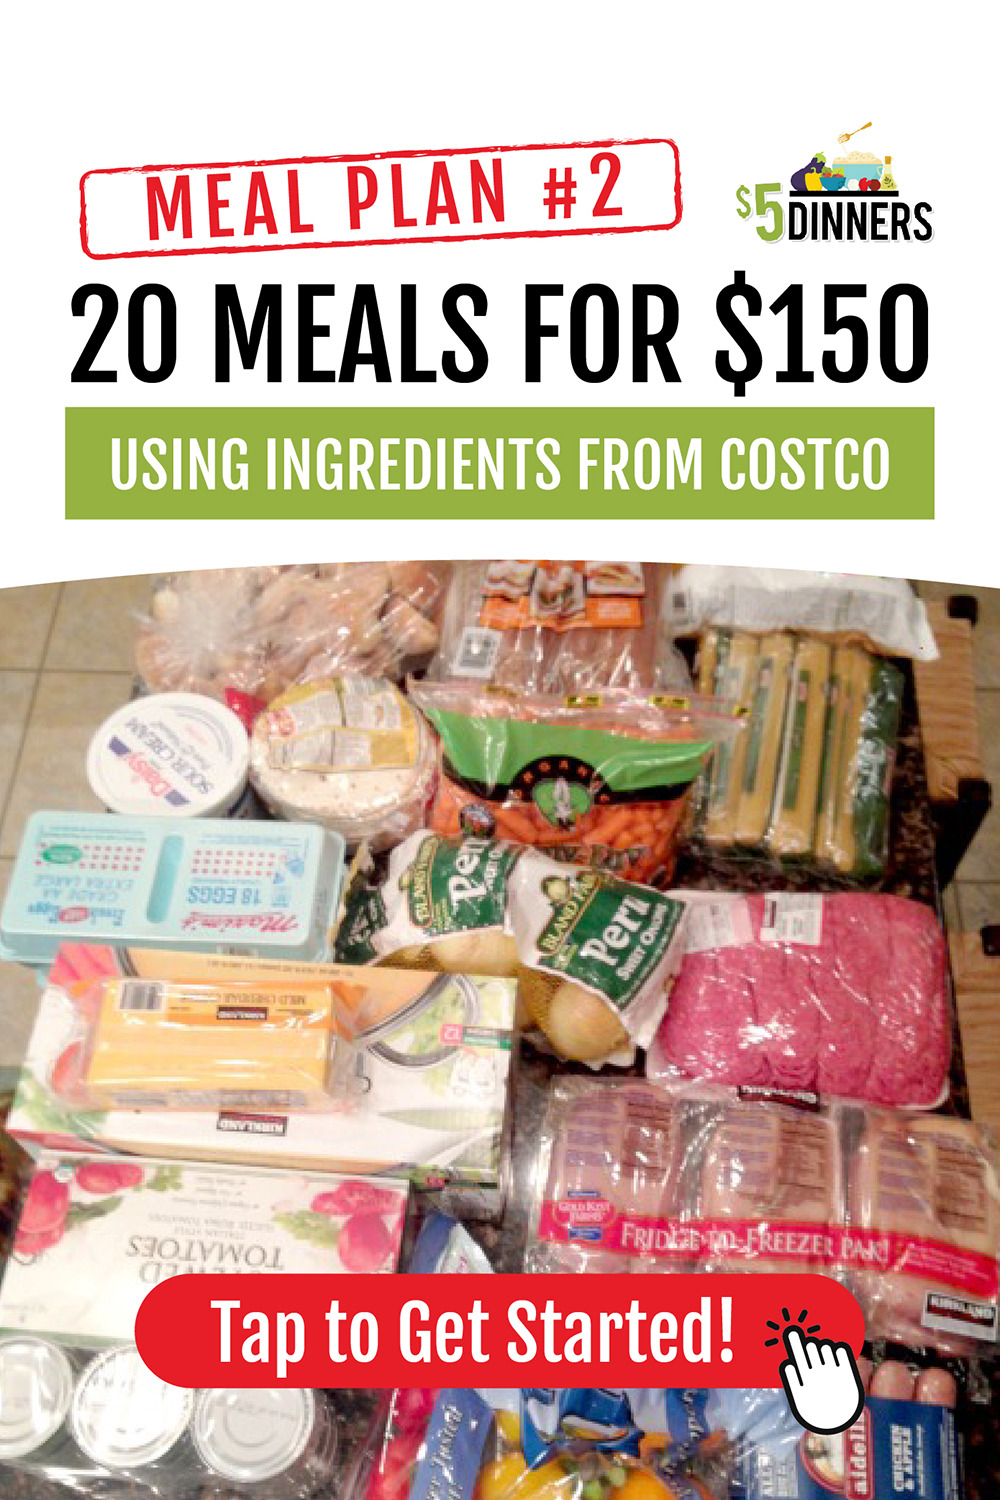 photo regarding Costco One Day Pass Printable named 20 Food items at Costco for $150 Dinner System #2 with Printables